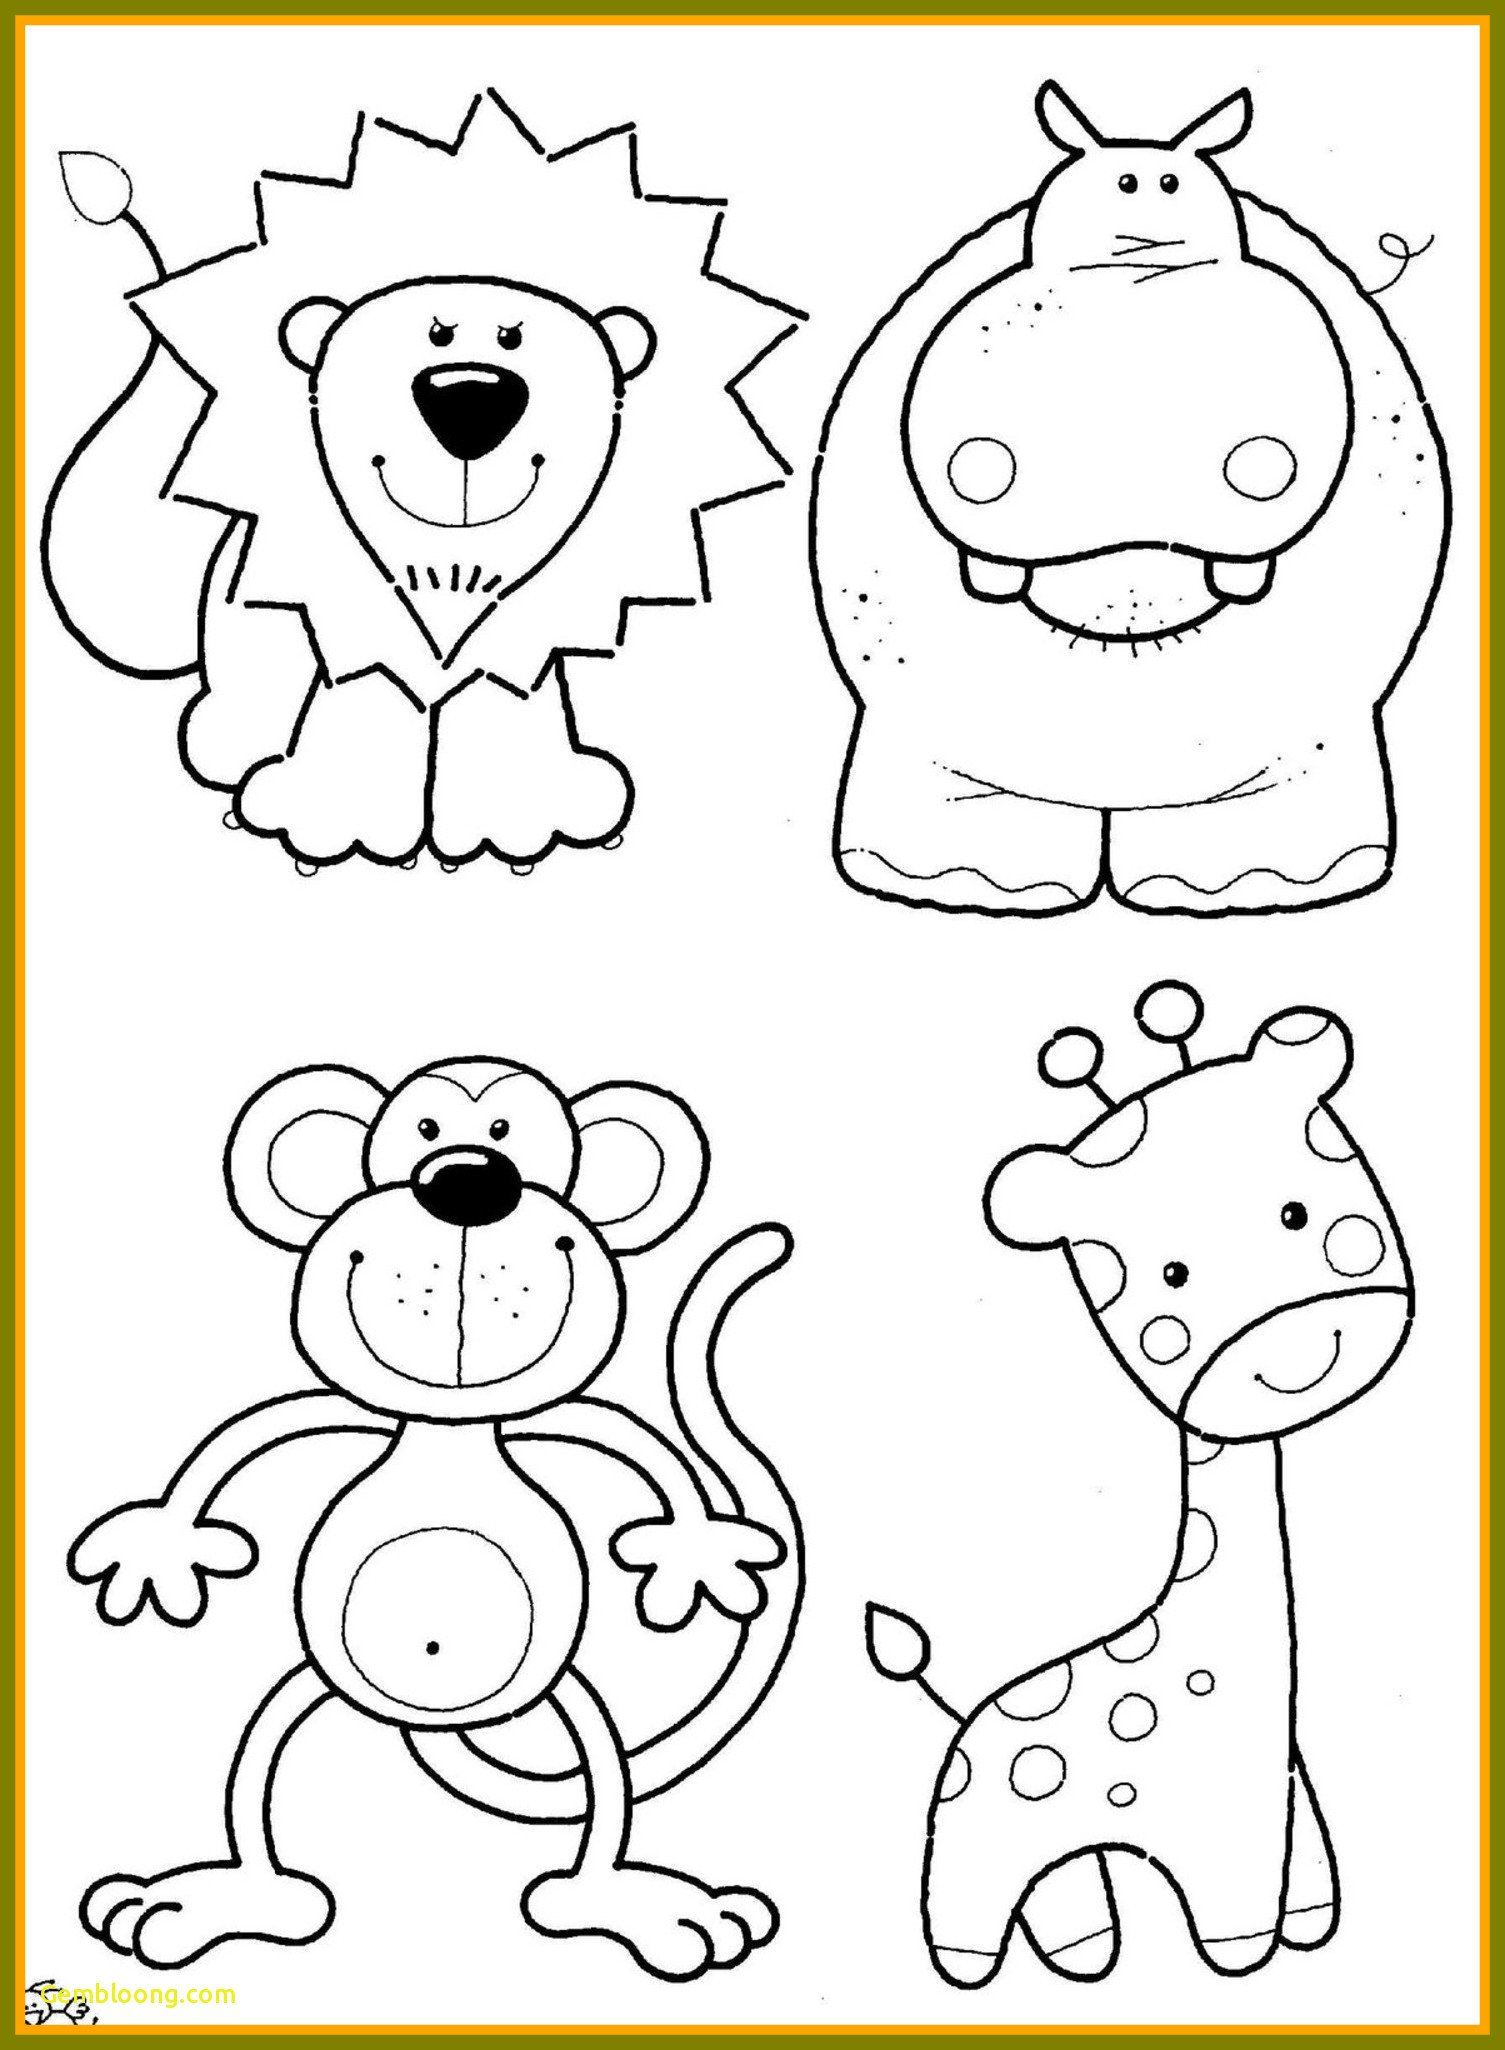 Zoo Animals Coloring Sheet Coloring Pages Baby Animal Coloring Pages Best Lets Zoo Animal Coloring Pages Animal Coloring Pages Animal Coloring Books